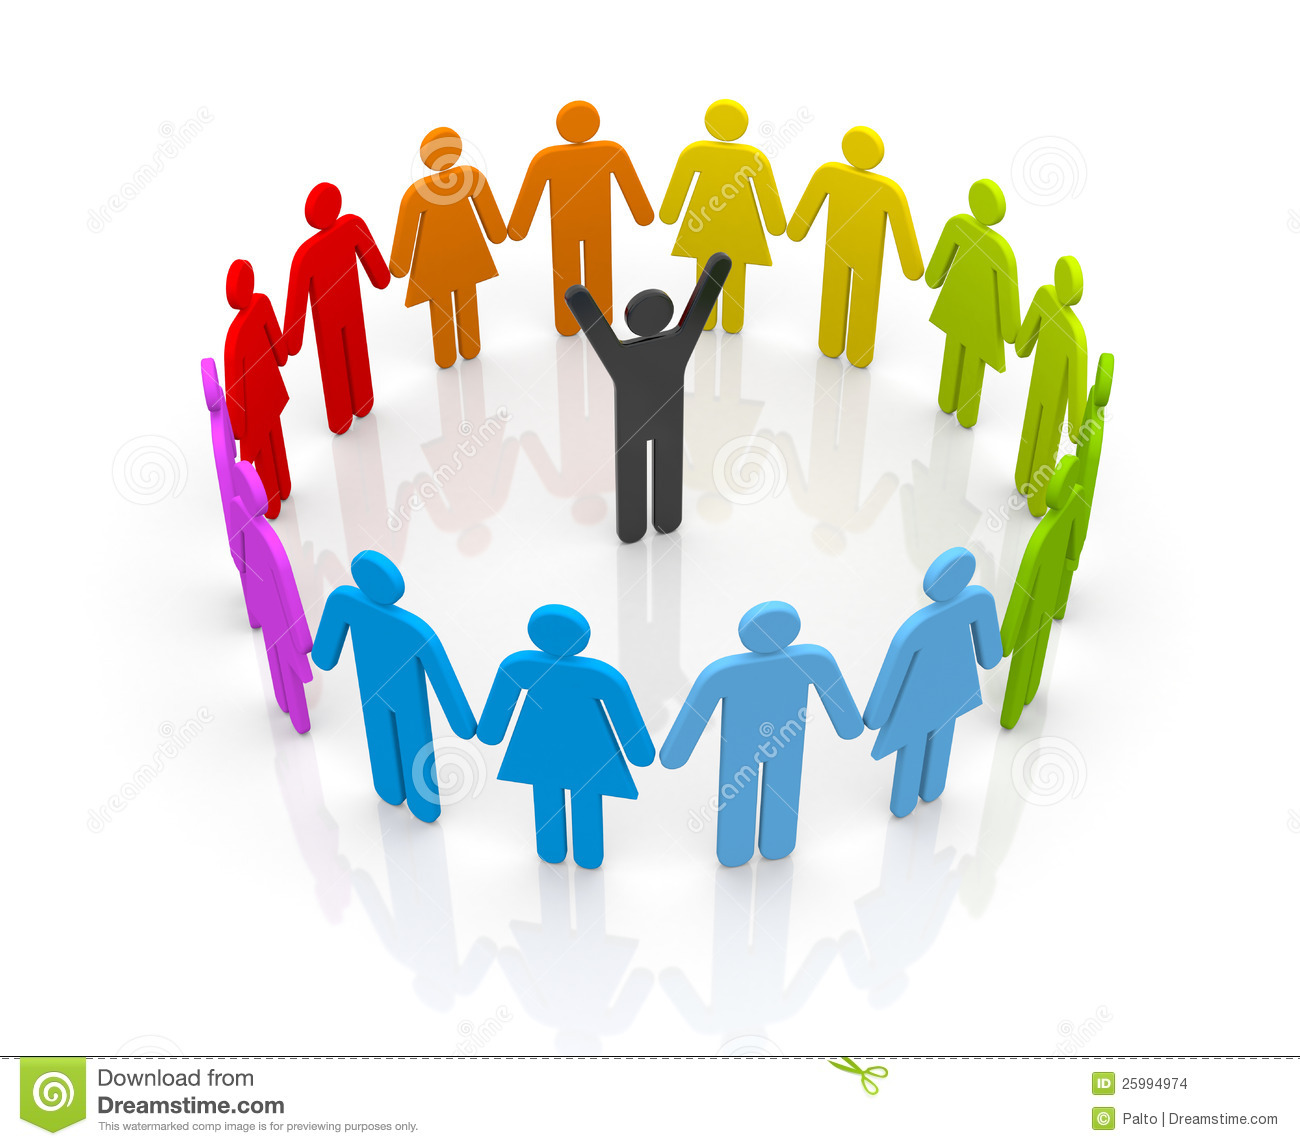 Crowd clipart leadership (46+) Representative Clipart Democracy Gallery